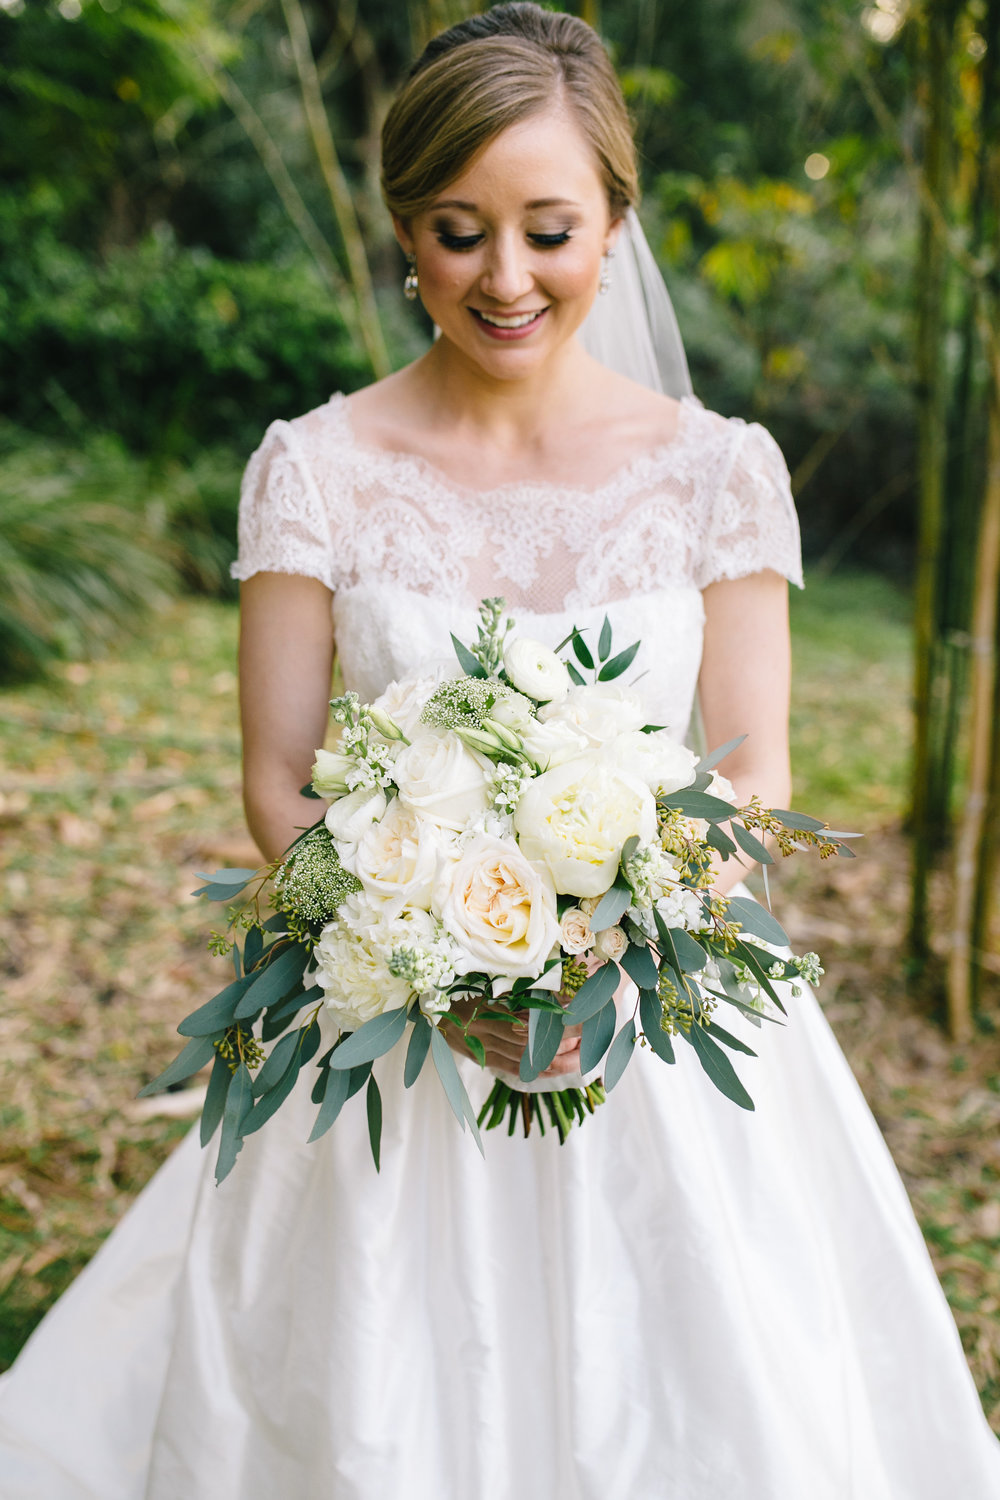 Bridal bouquet full of garden roses